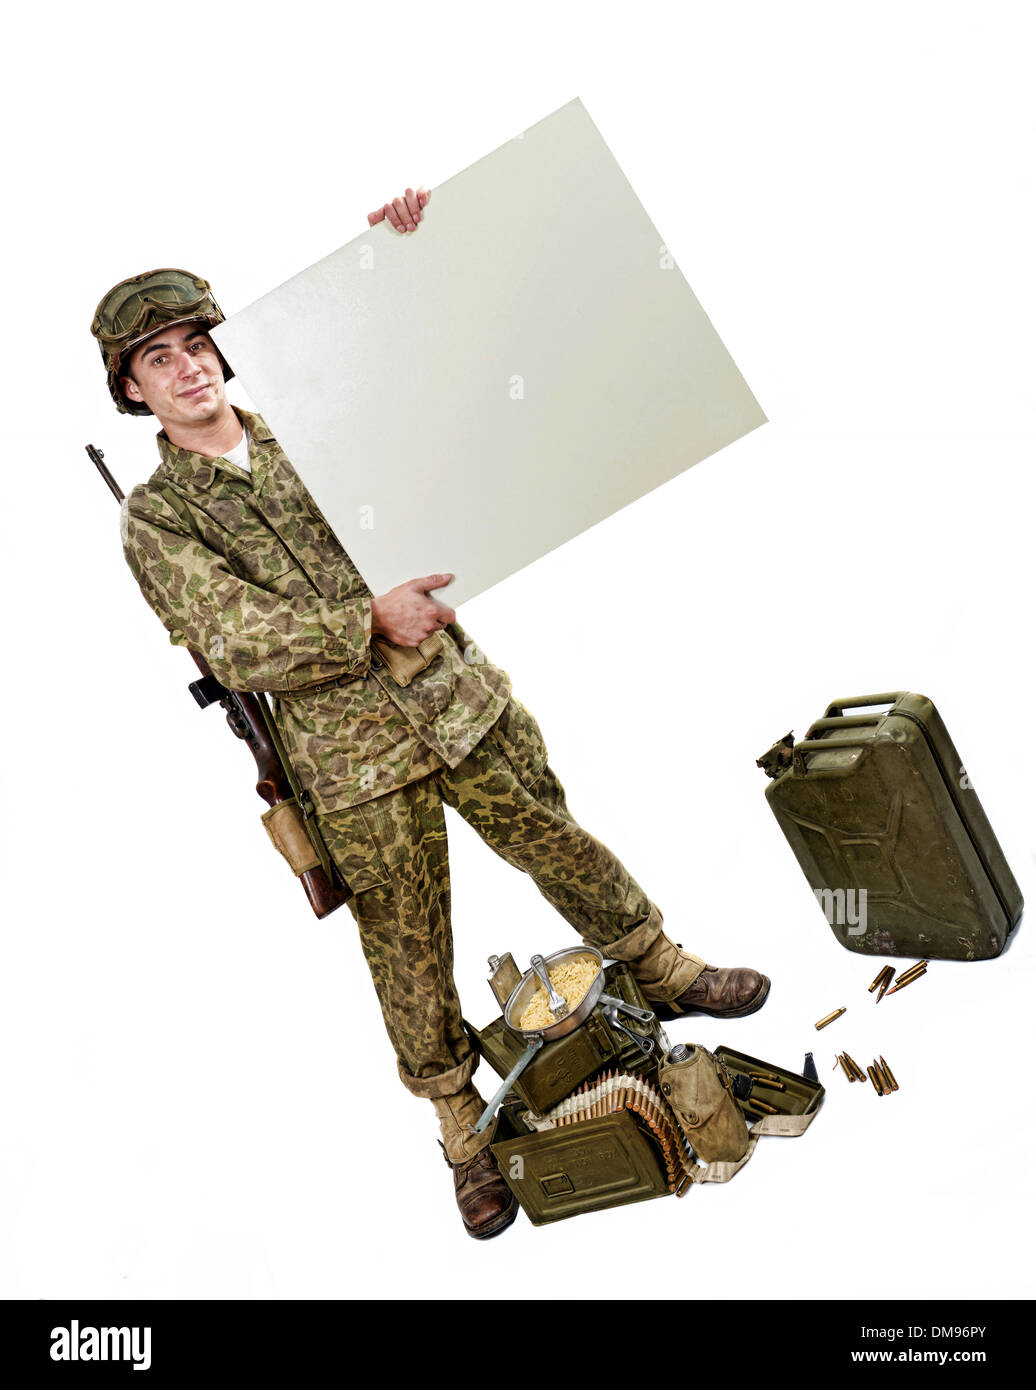 young American soldier in camouflage uniform shows a sign - Stock Image